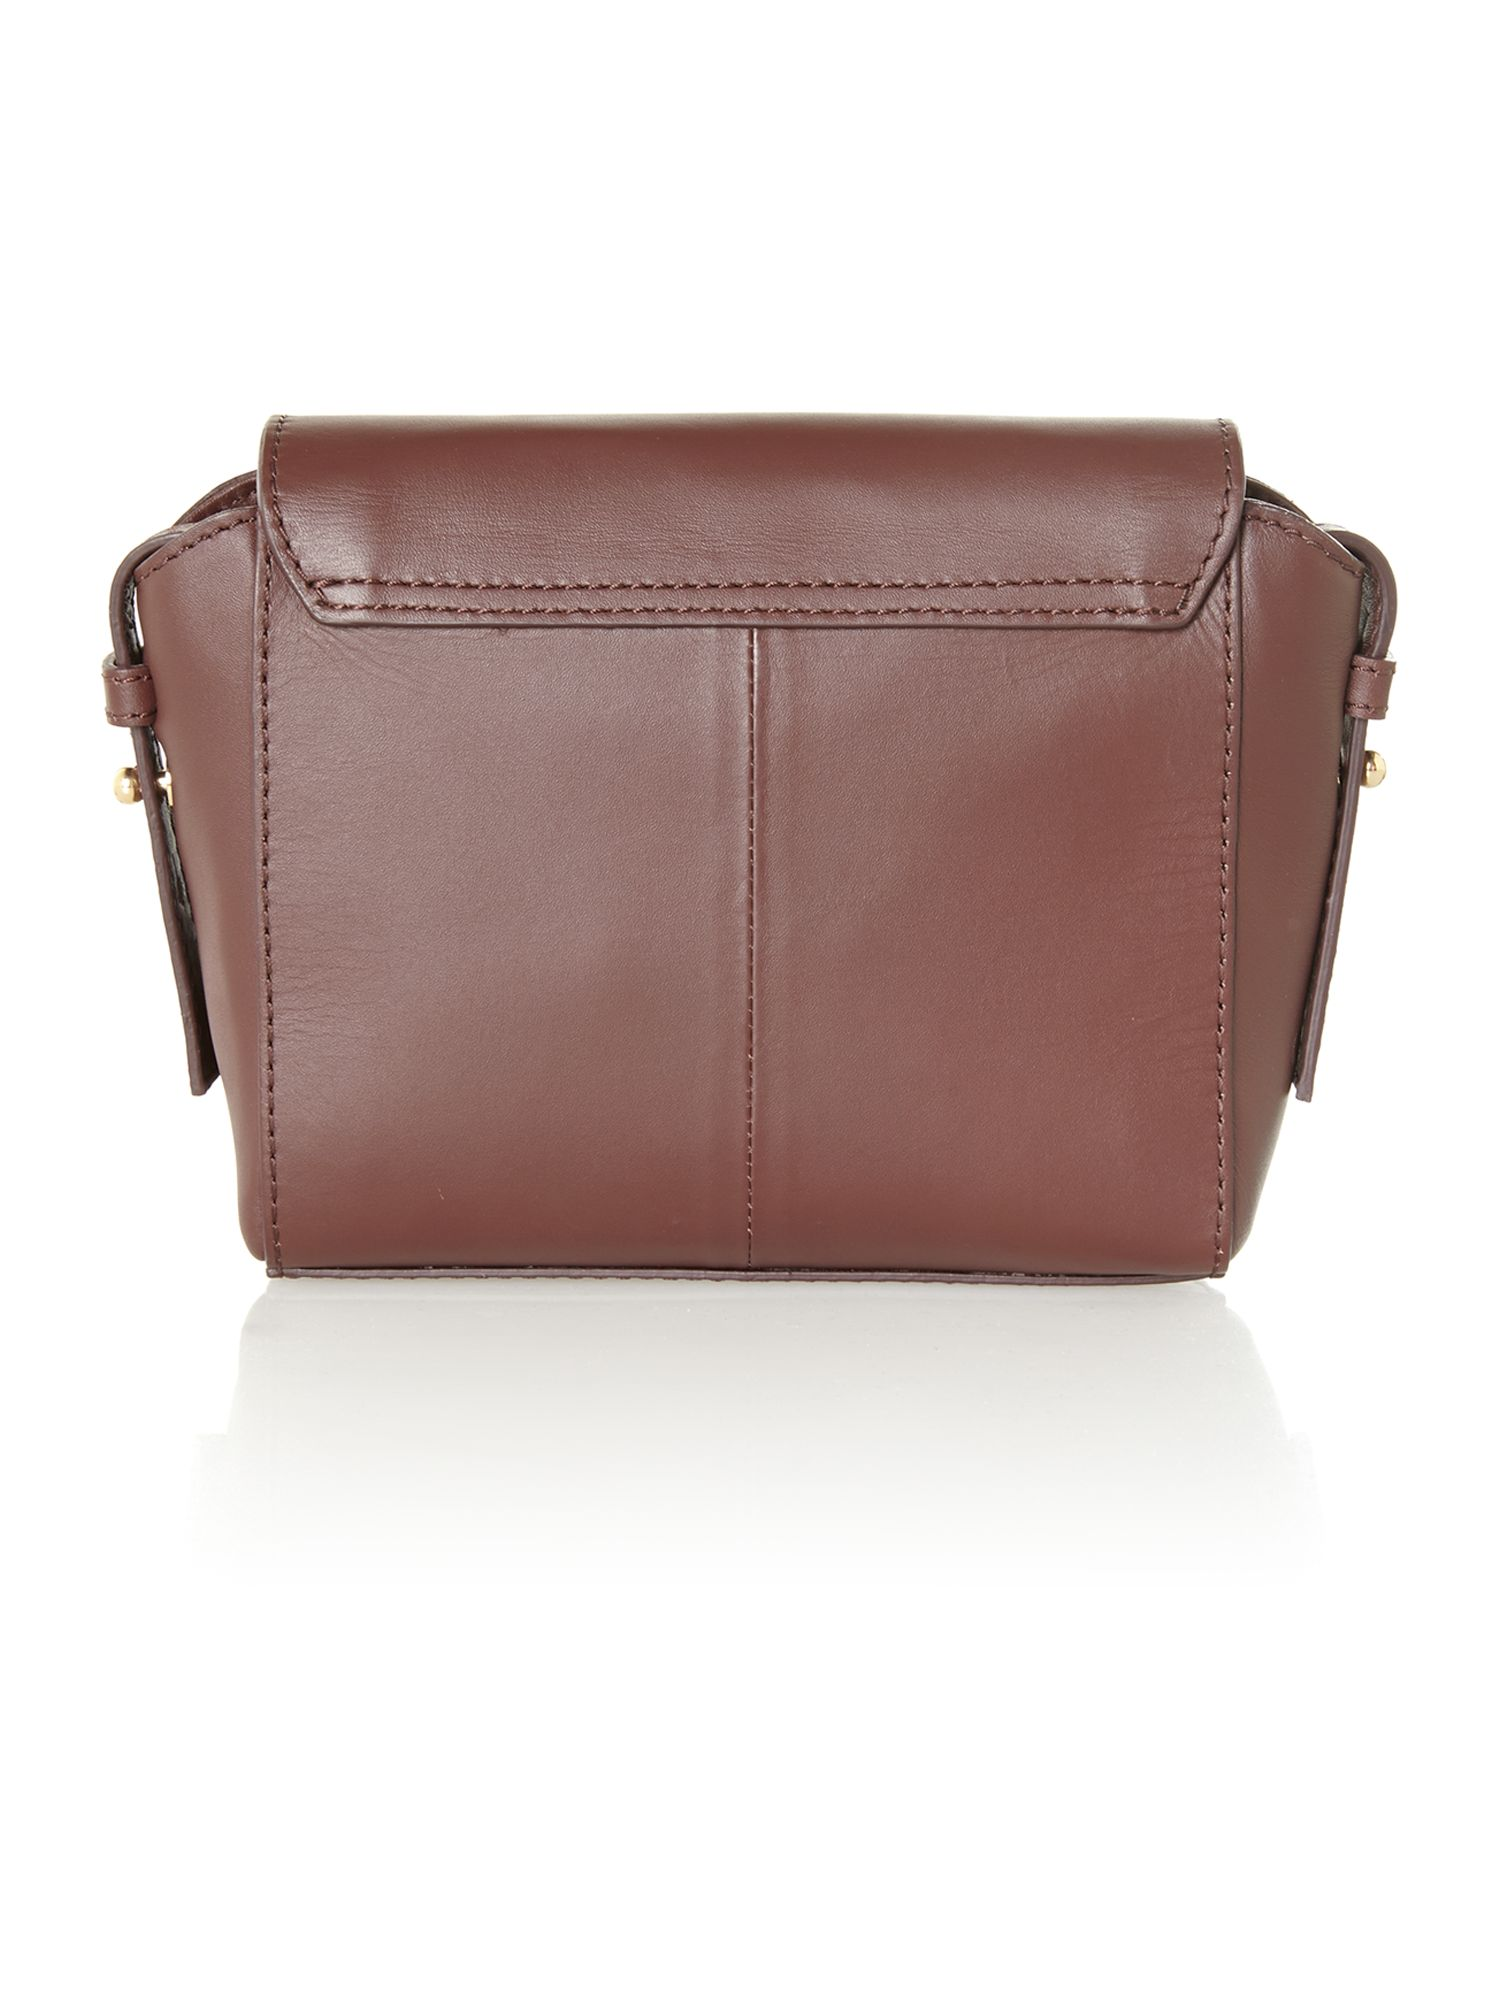 Small carine cross body bag